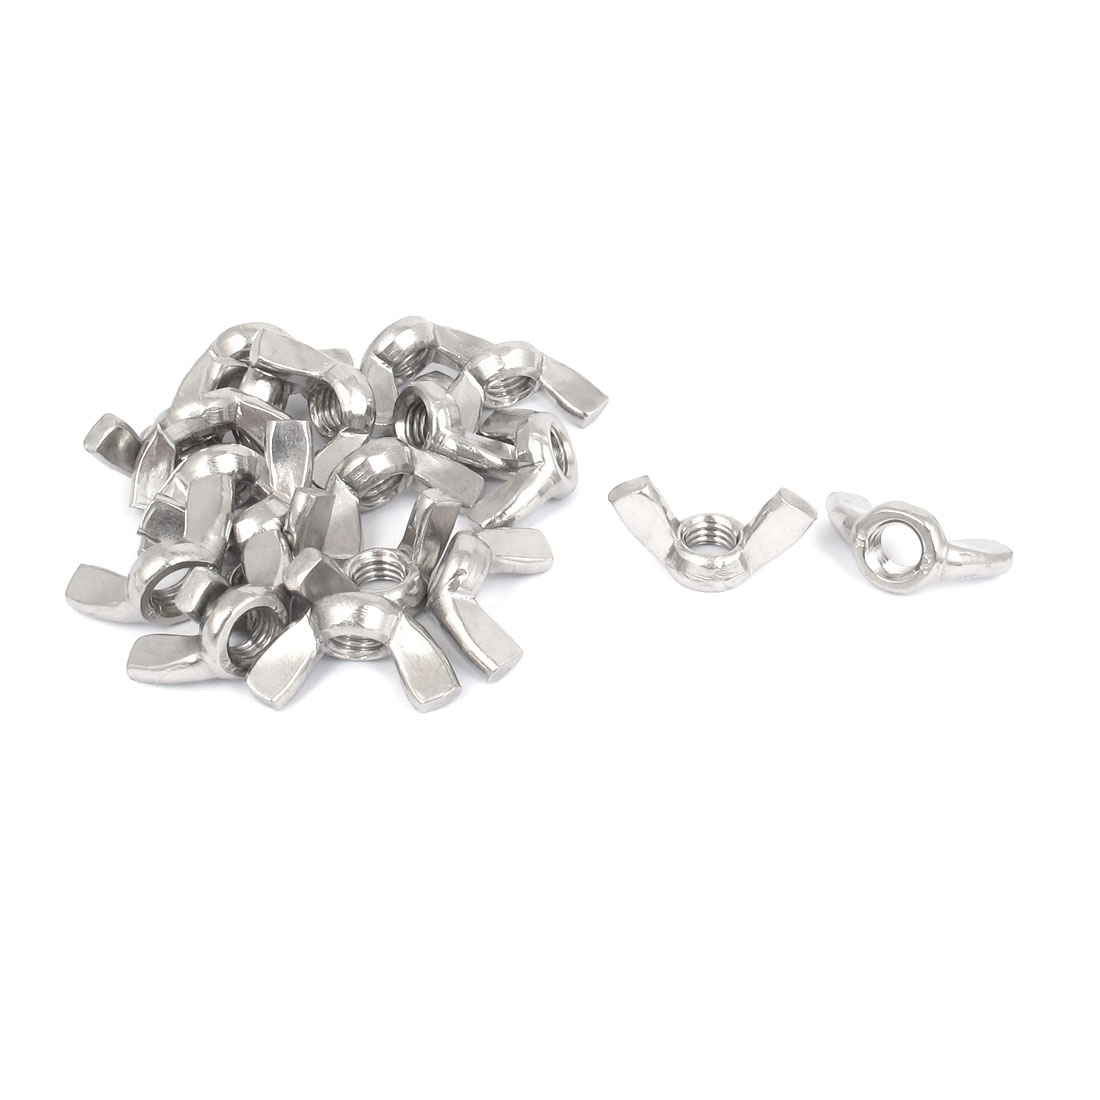 M8 Female Thread Dia 304 Stainless Steel Wingnut Butterfly Wing Nuts 20Pcs